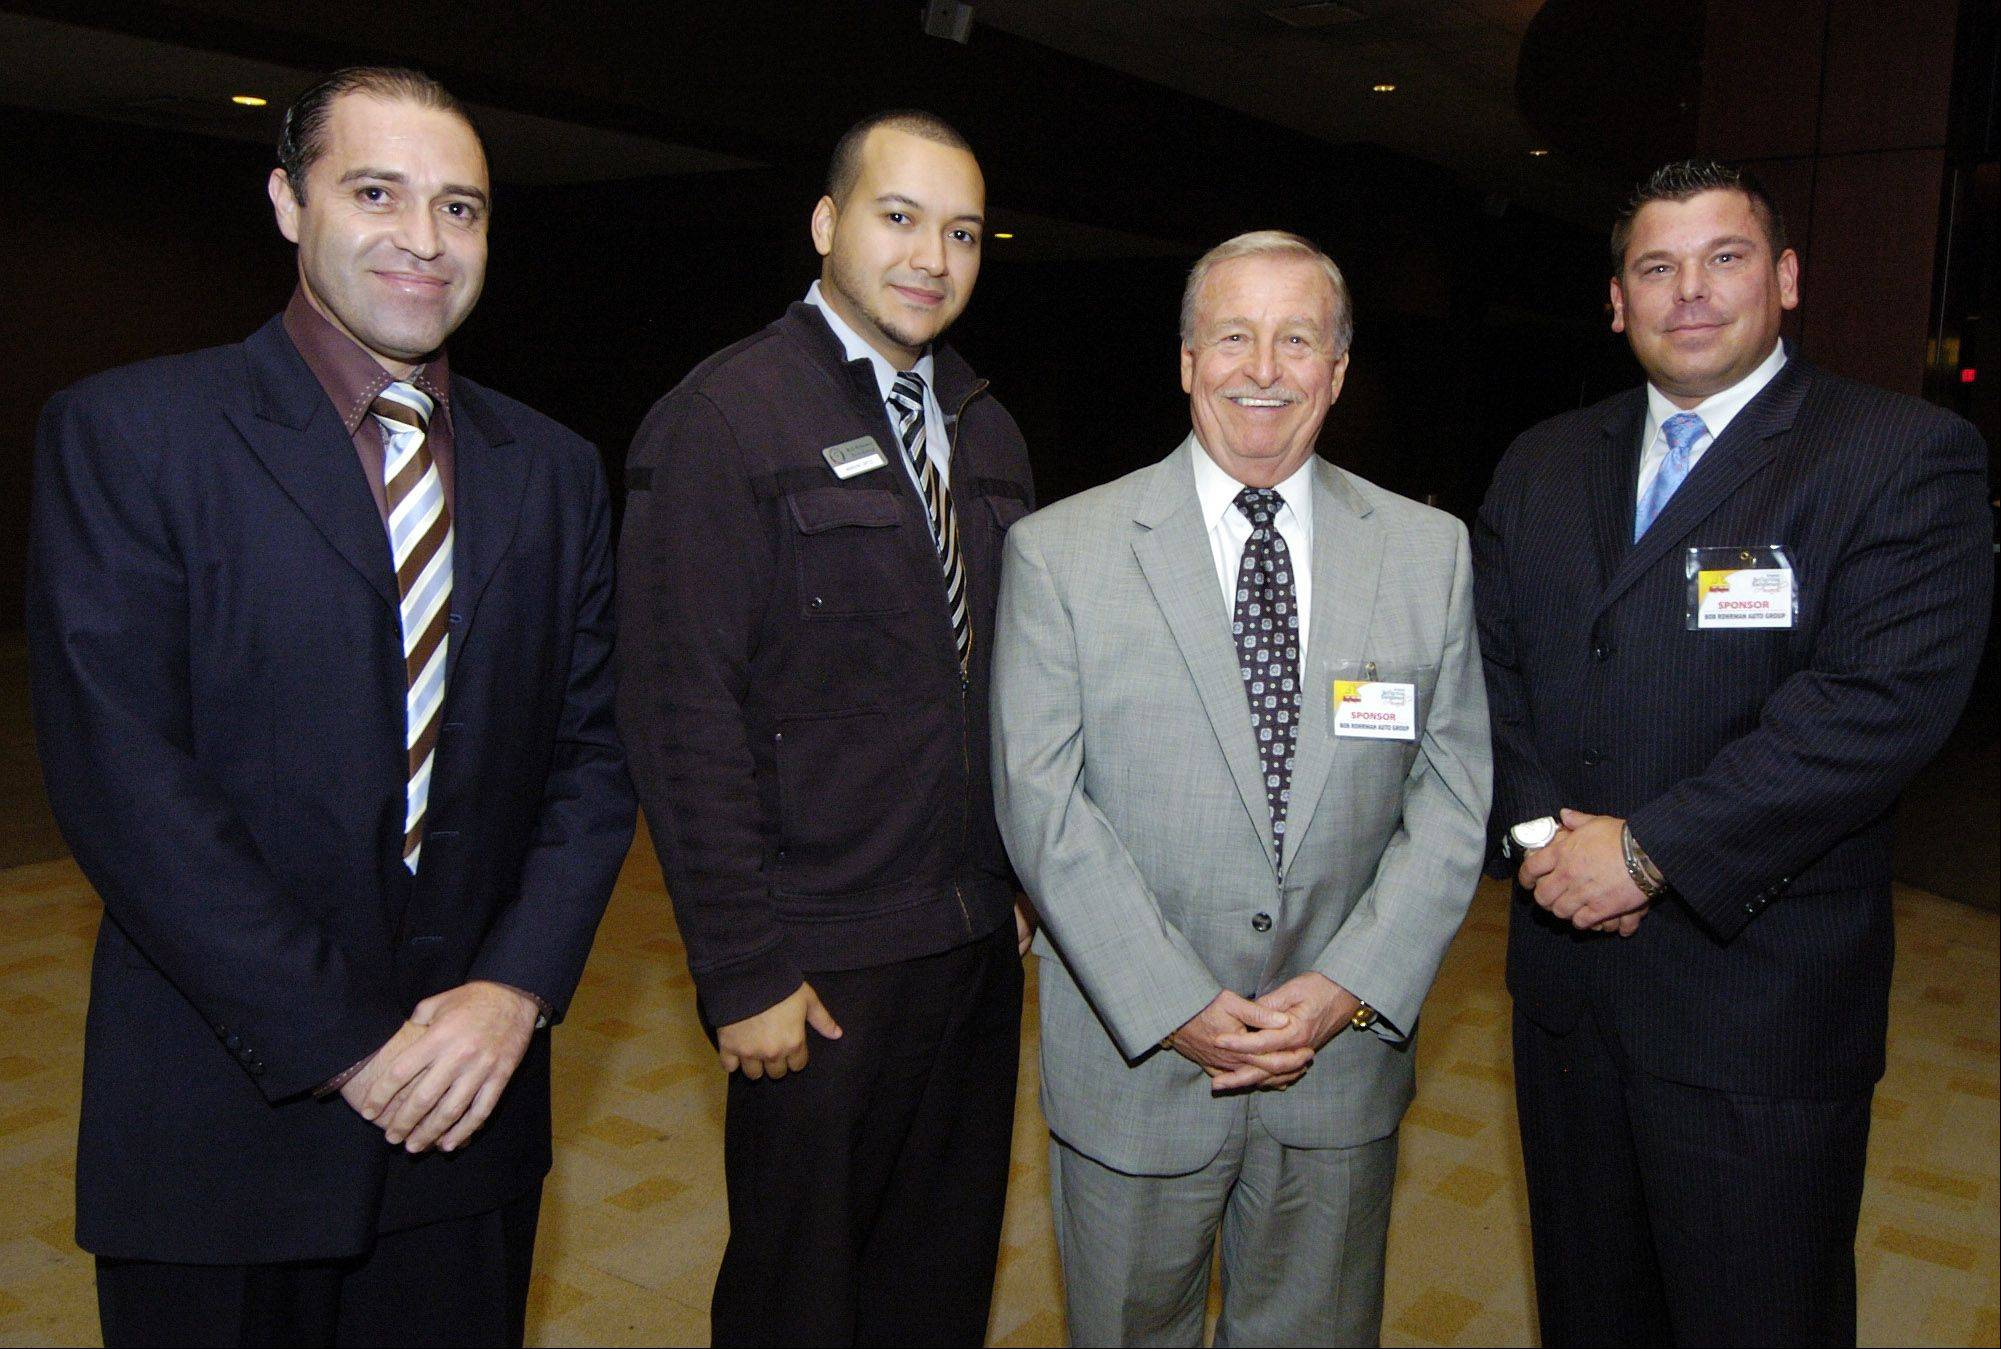 Alex Castro of Arlington Lexus in Palatine and Marvin Ortiz, John Barrett and Kurt Blankenburg, all of Bob Rohrman Schaumburg Kia, attended the Reflejos Reflecting Excellence Awards at the Sears Centre in Hoffman Estates.